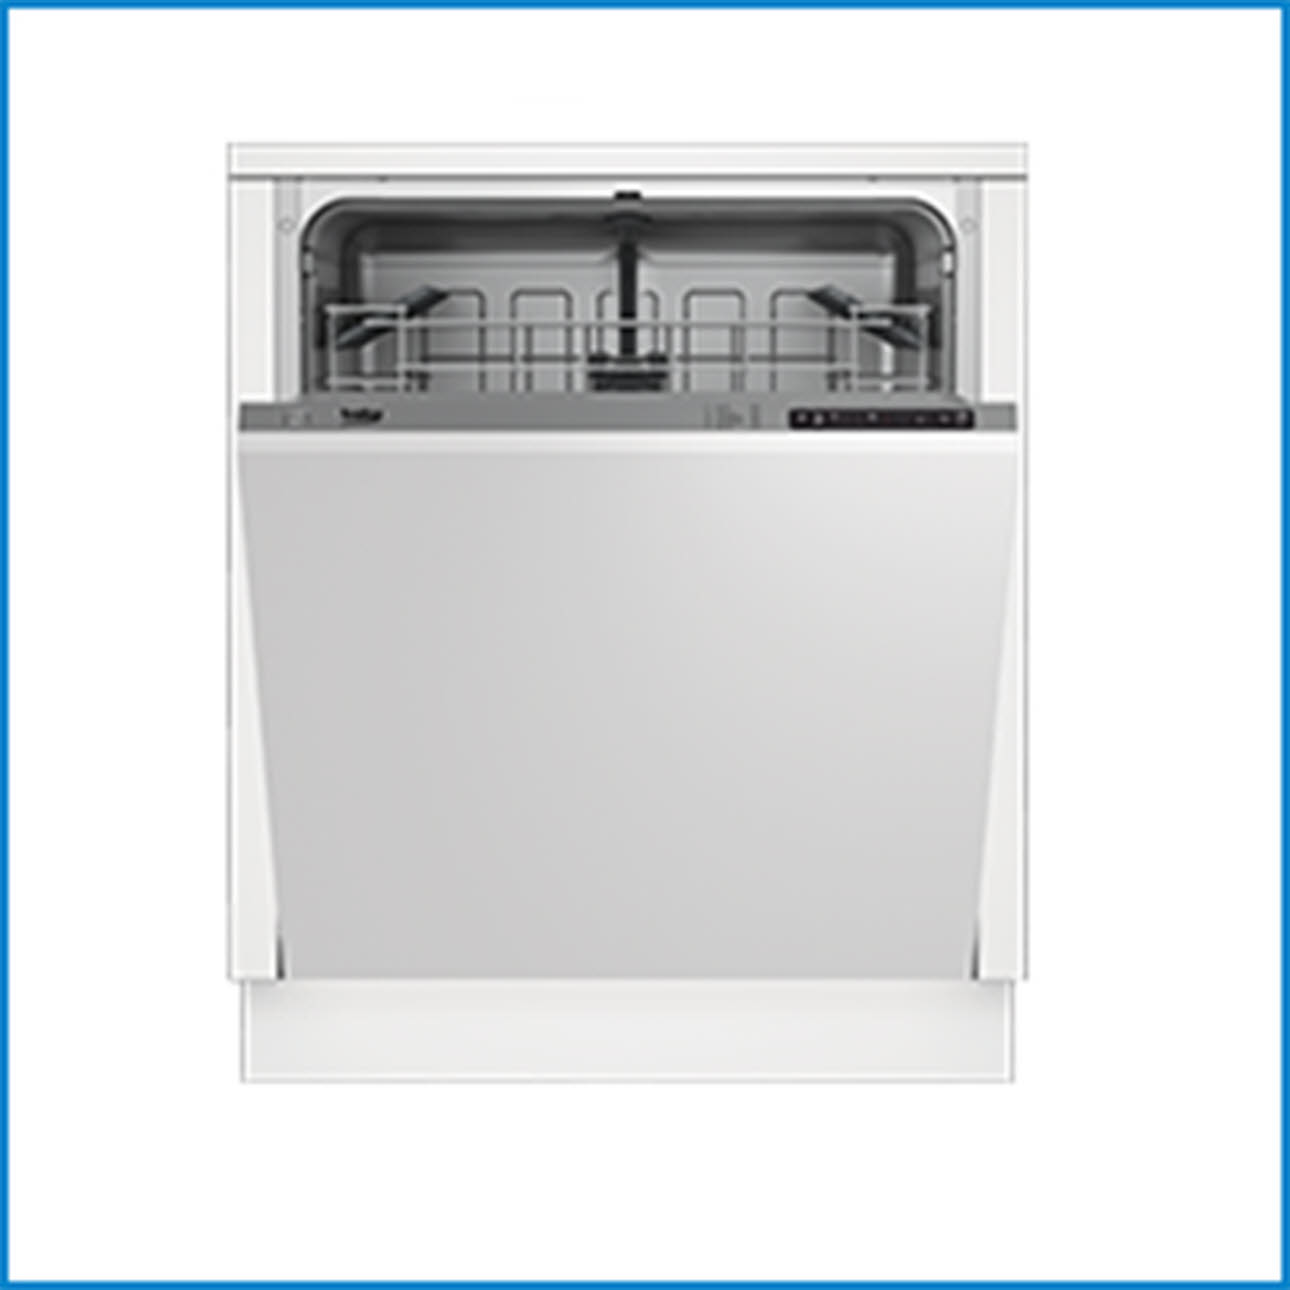 White Beko dishwasher, frontal door ajar